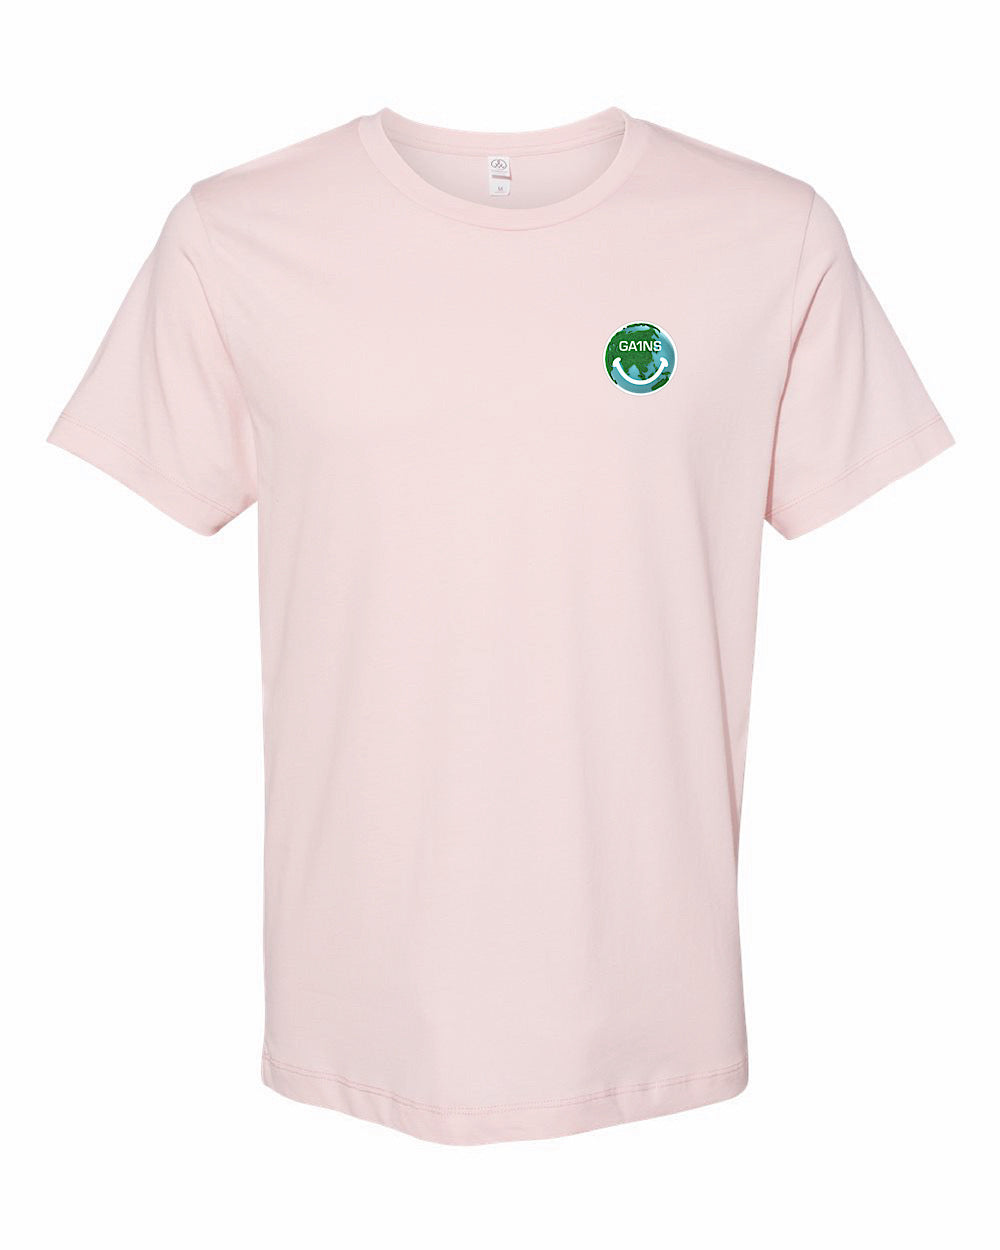 Earth GA1NS Alternative Tee